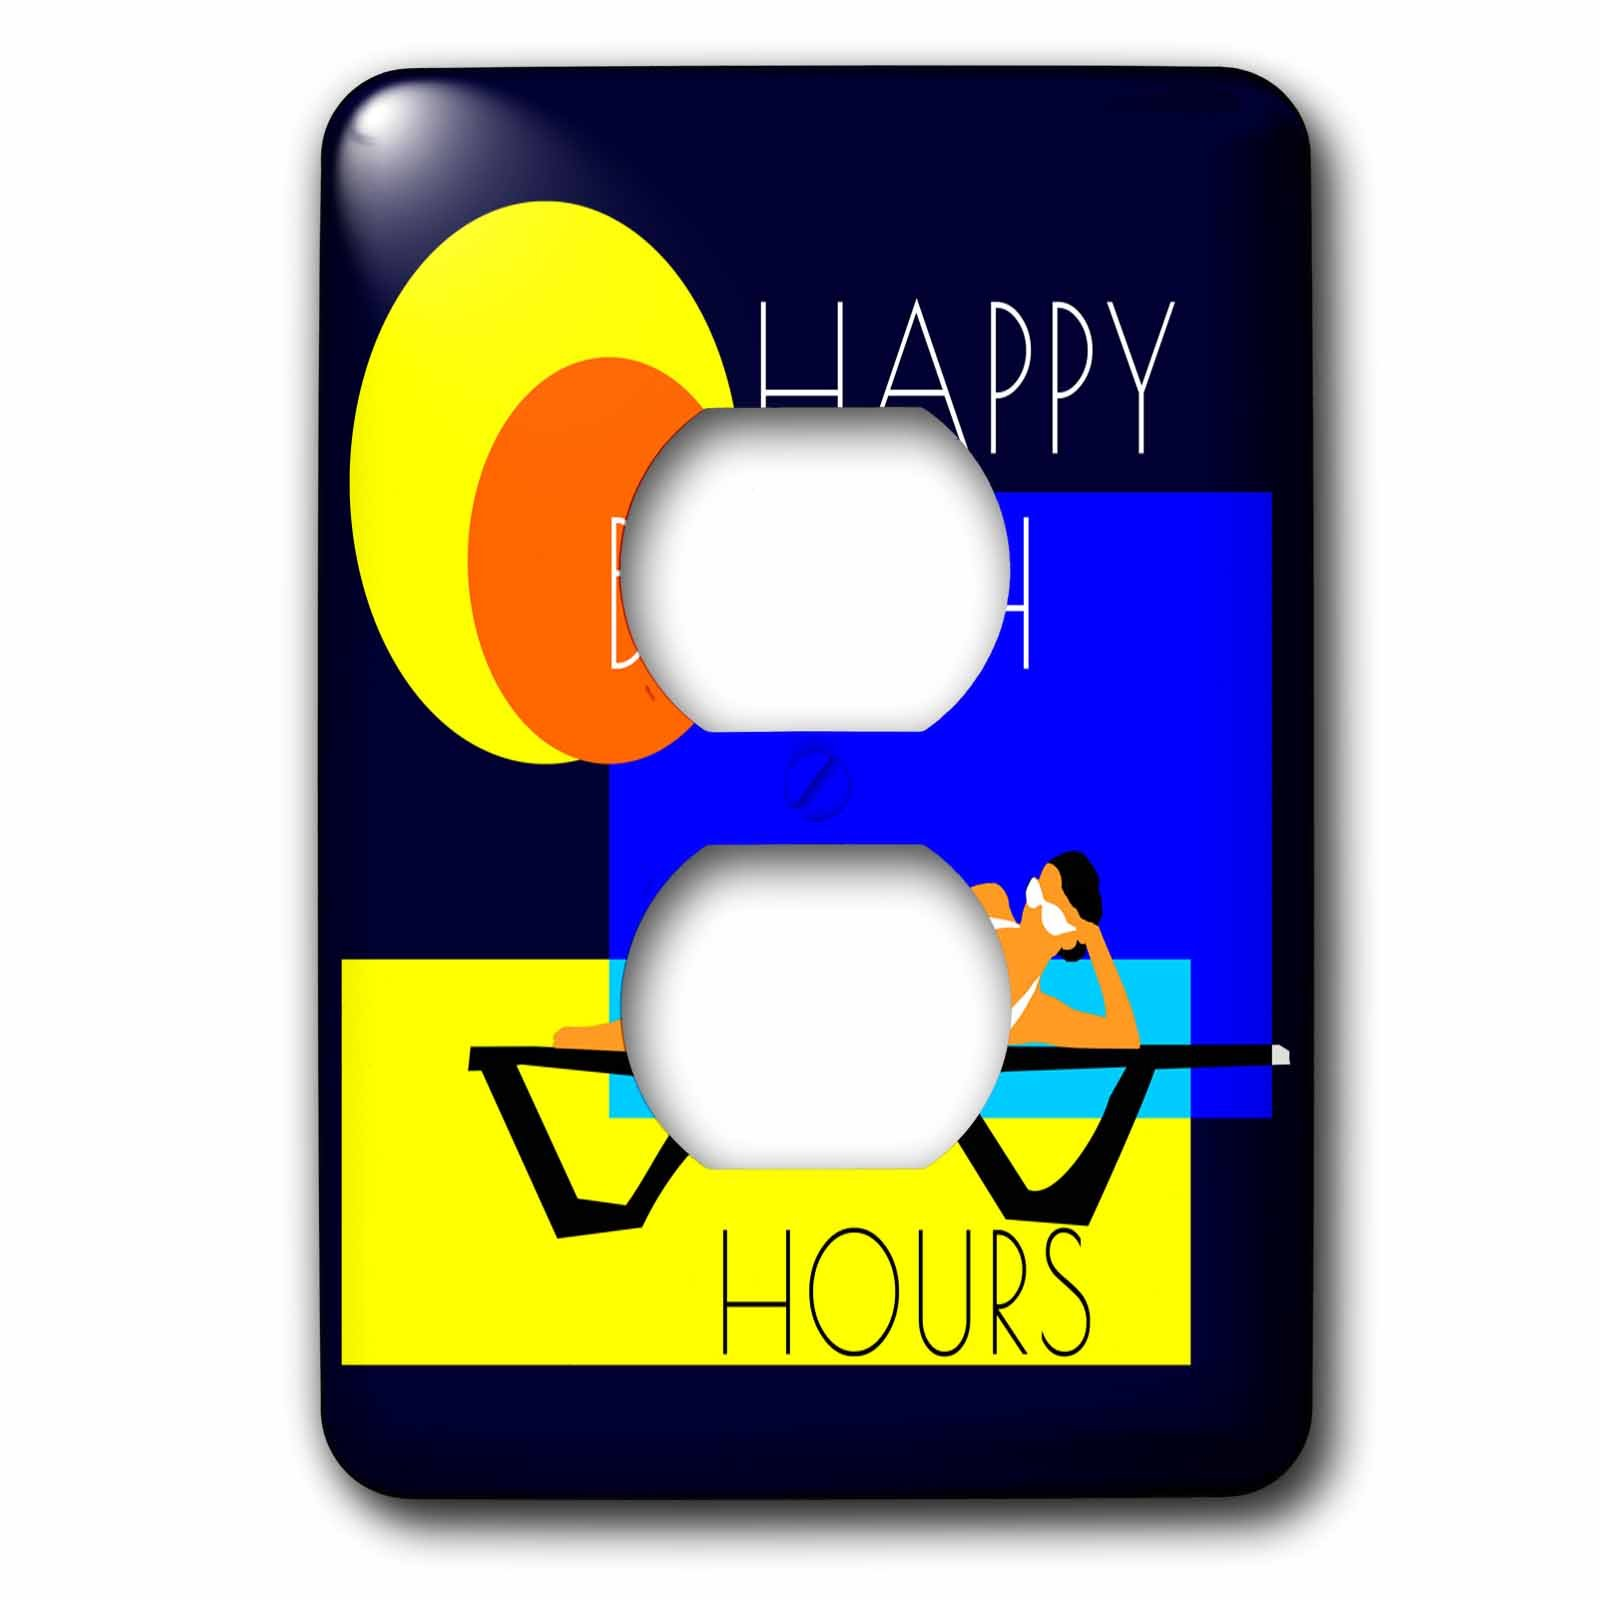 3dRose Alexis Design - Beach, Sea, Surf - Beautiful woman lays on a sun lounge. Happy Beach Hours text - Light Switch Covers - 2 plug outlet cover (lsp_271759_6)